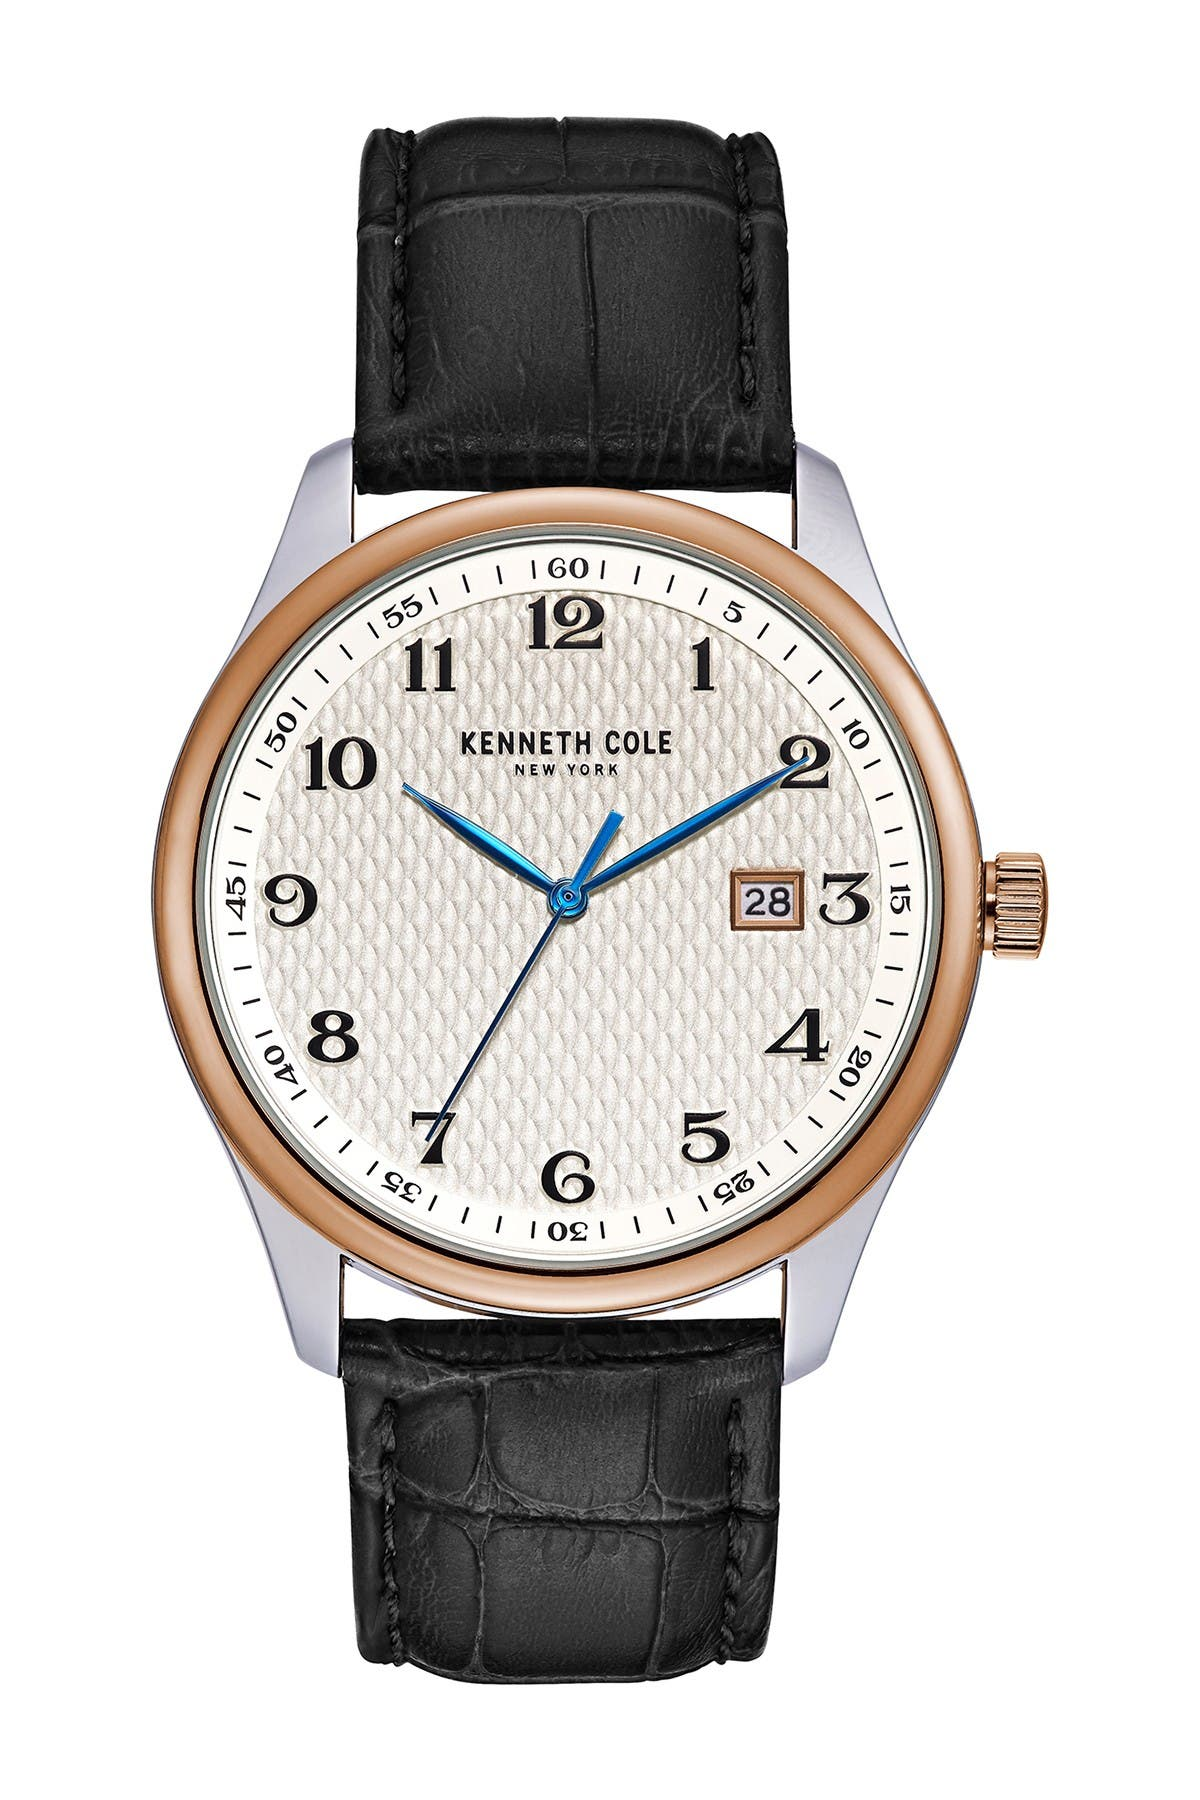 Image of Kenneth Cole New York Men's Classic 3-Hand Croc Embossed Leather Strap Watch, 42mm